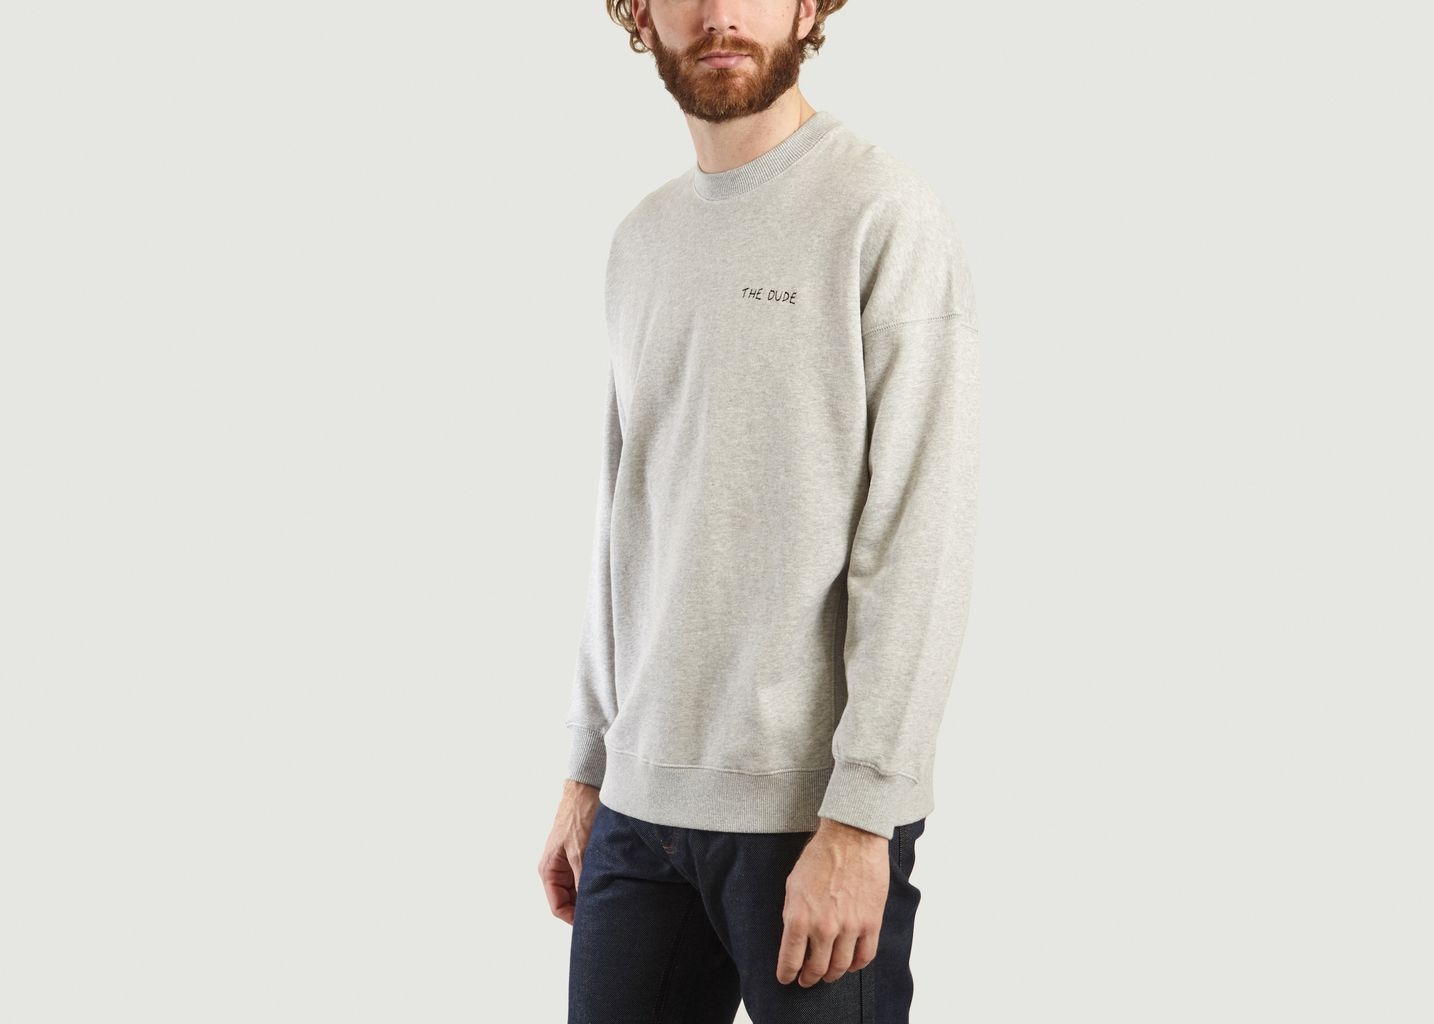 Sweat Brodé The Dude - Maison Labiche